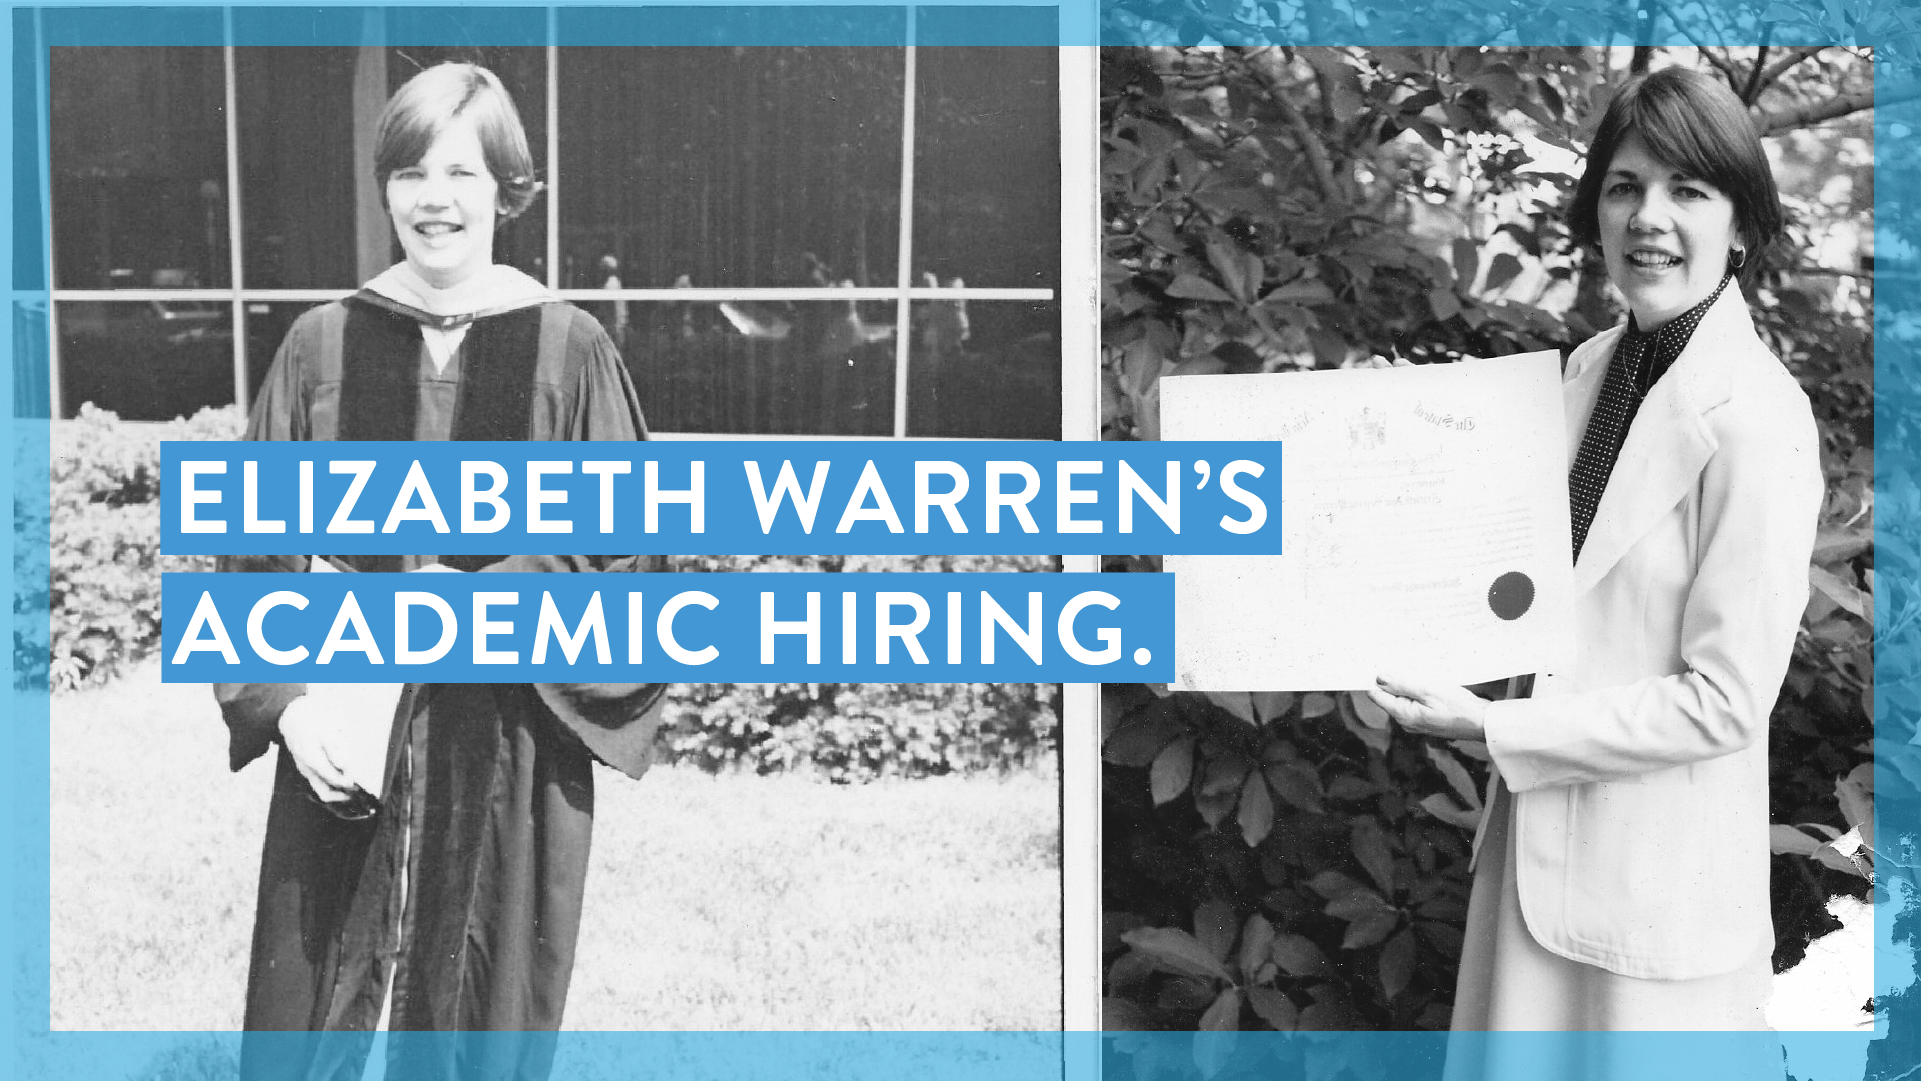 Two photos of Elizabeth Warren early in her academic career